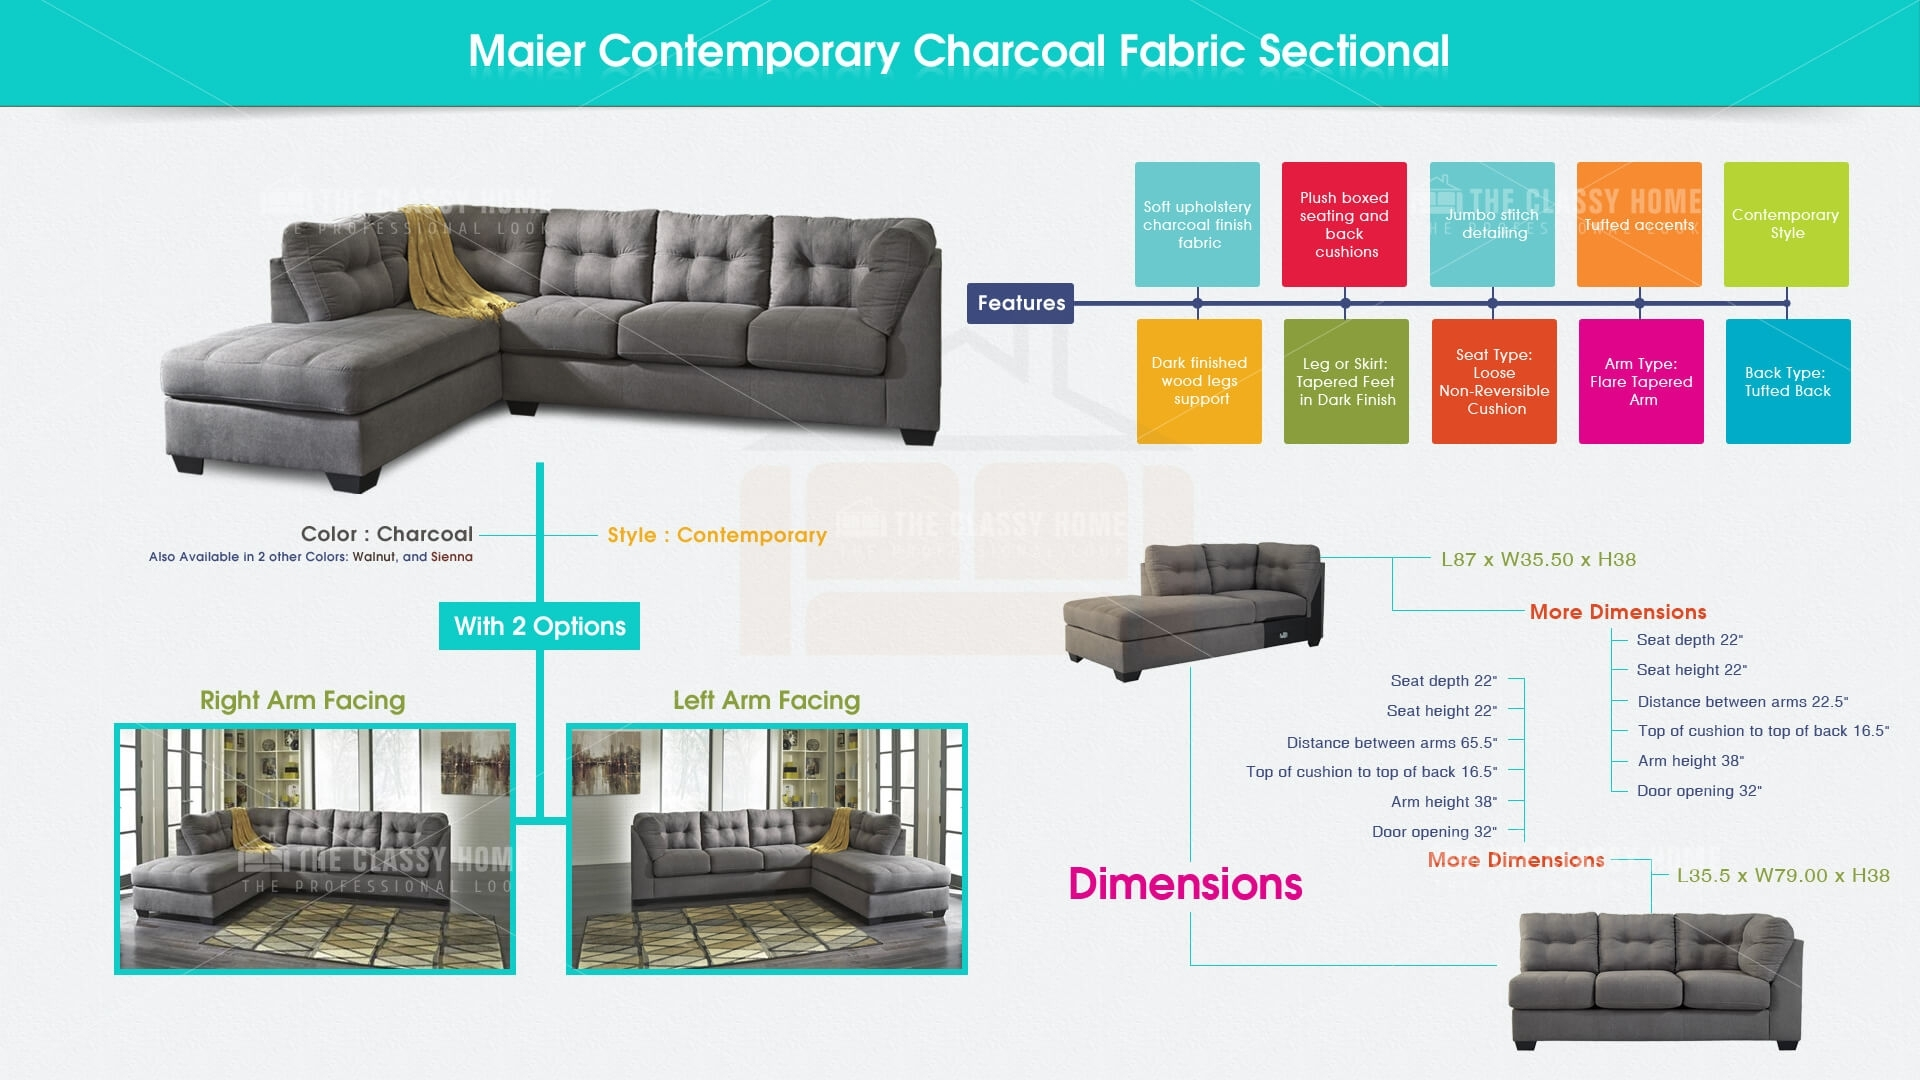 Ashley Furniture Maier Charcoal Raf Chaise Sectional | The Classy Home With Regard To Lucy Dark Grey 2 Piece Sectionals With Laf Chaise (View 23 of 25)